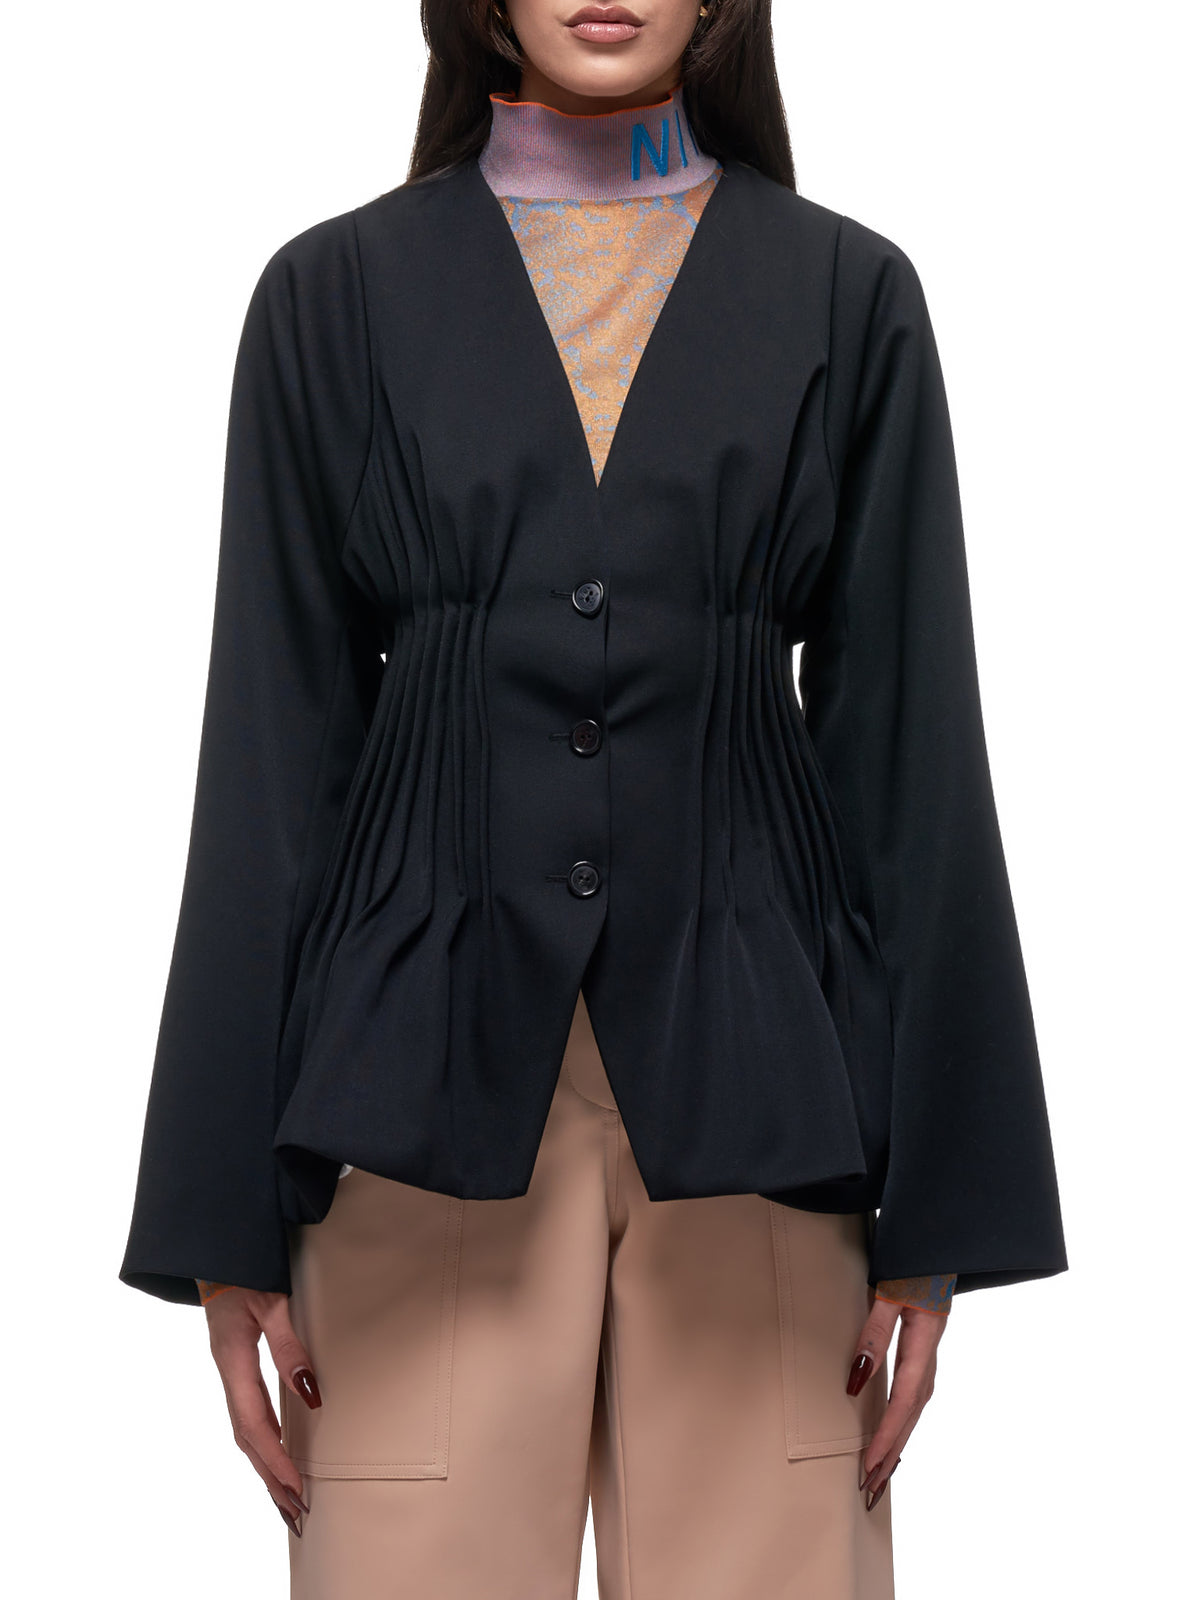 Pleated-Waist Jacket (ECVE016WV0233-U9000-BLACK)